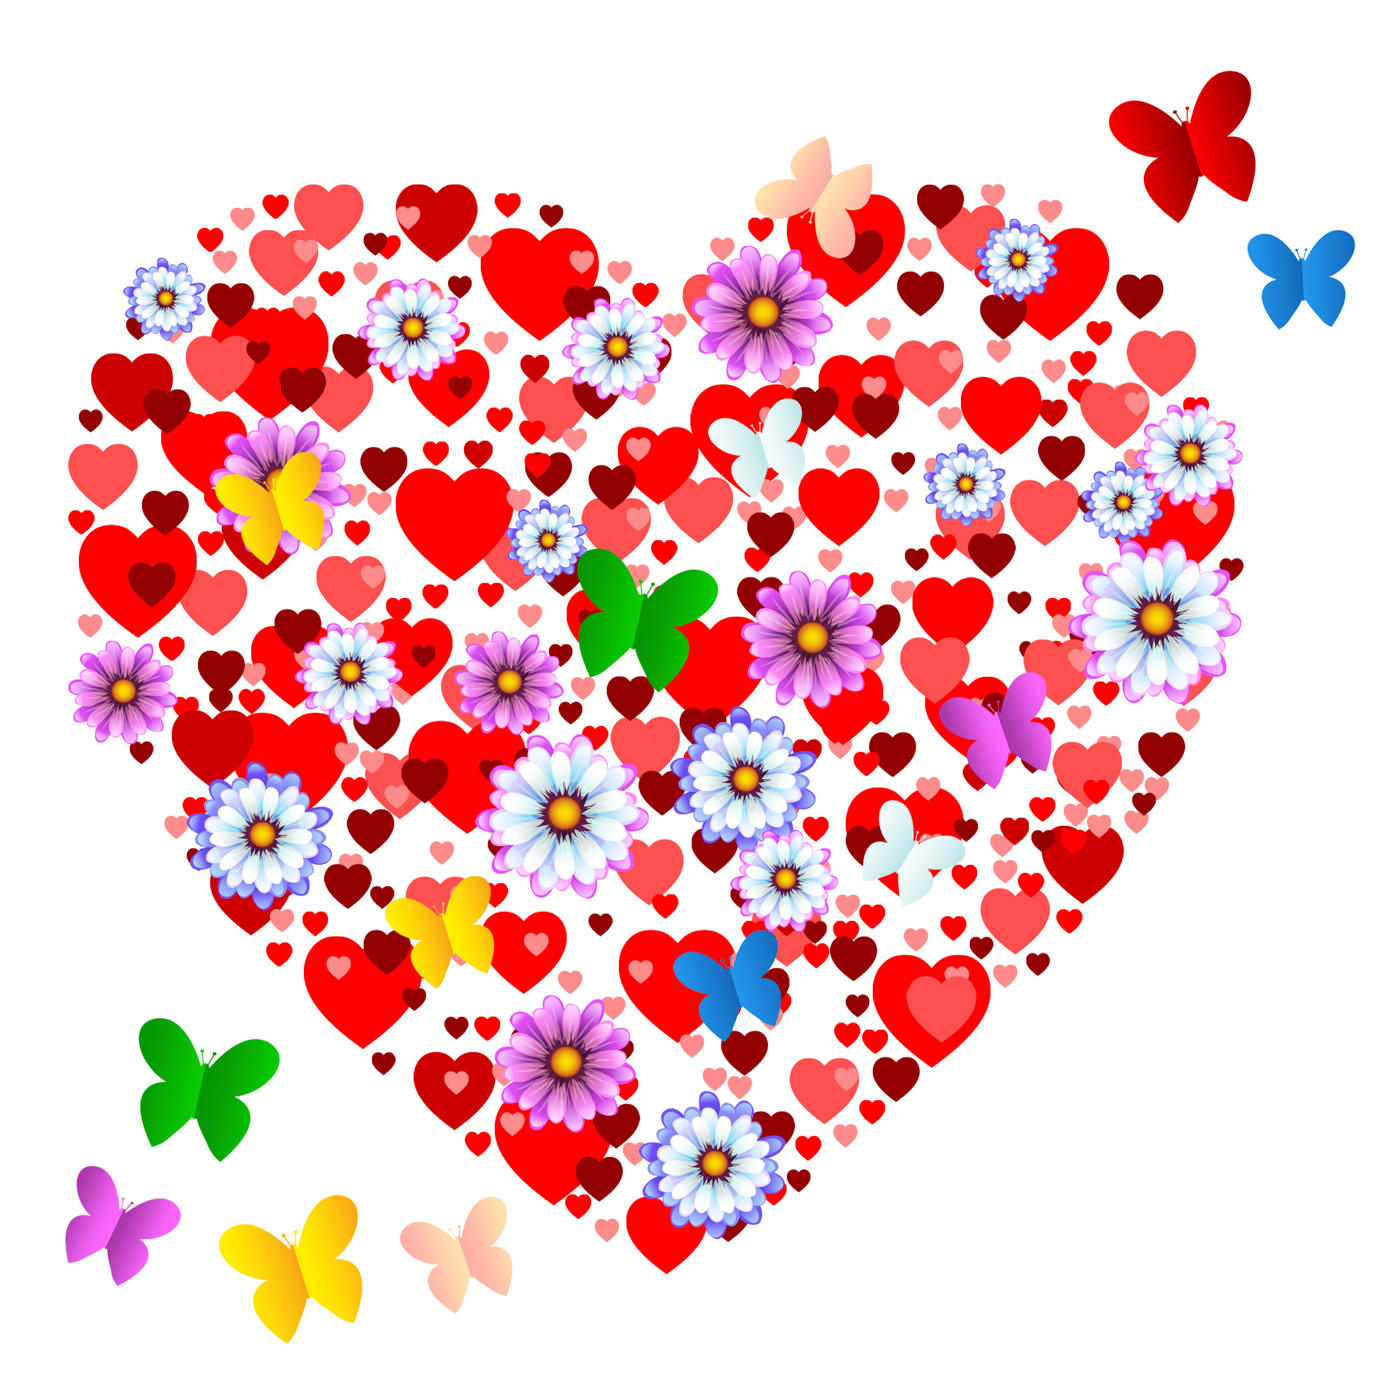 Hearts butterflies shows valentine day and animals photo